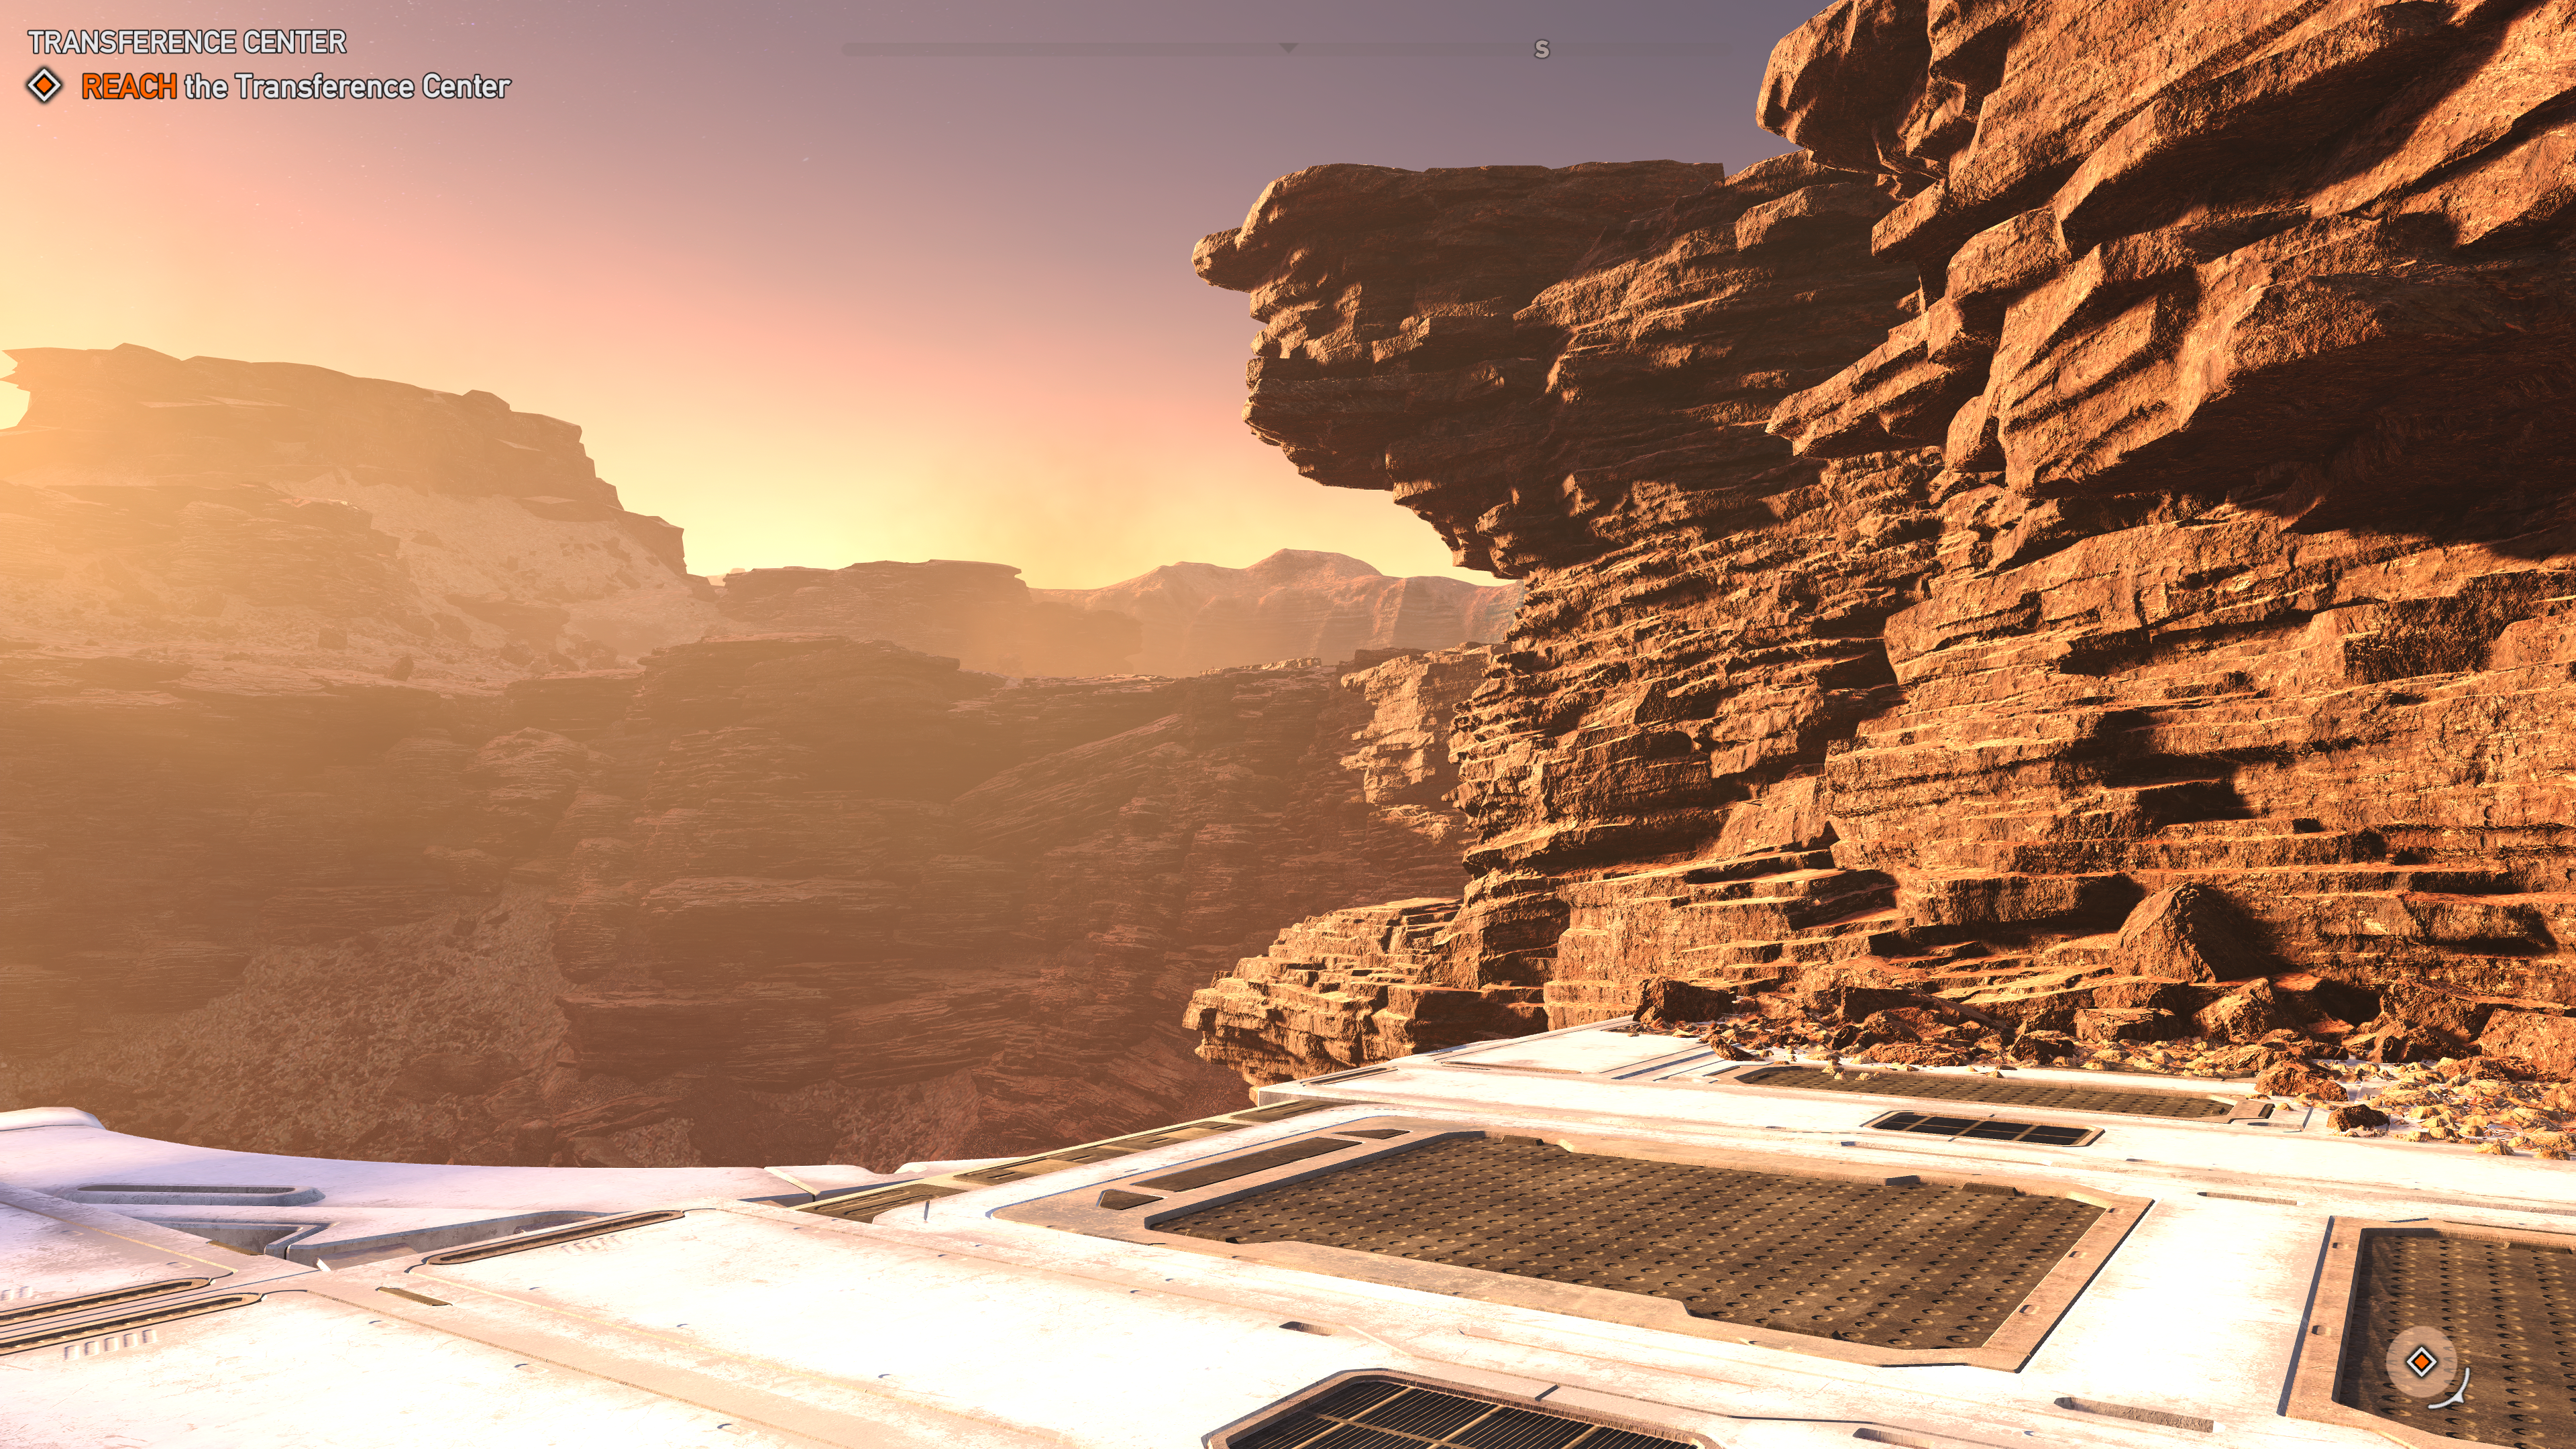 Lost on Mars Landscape